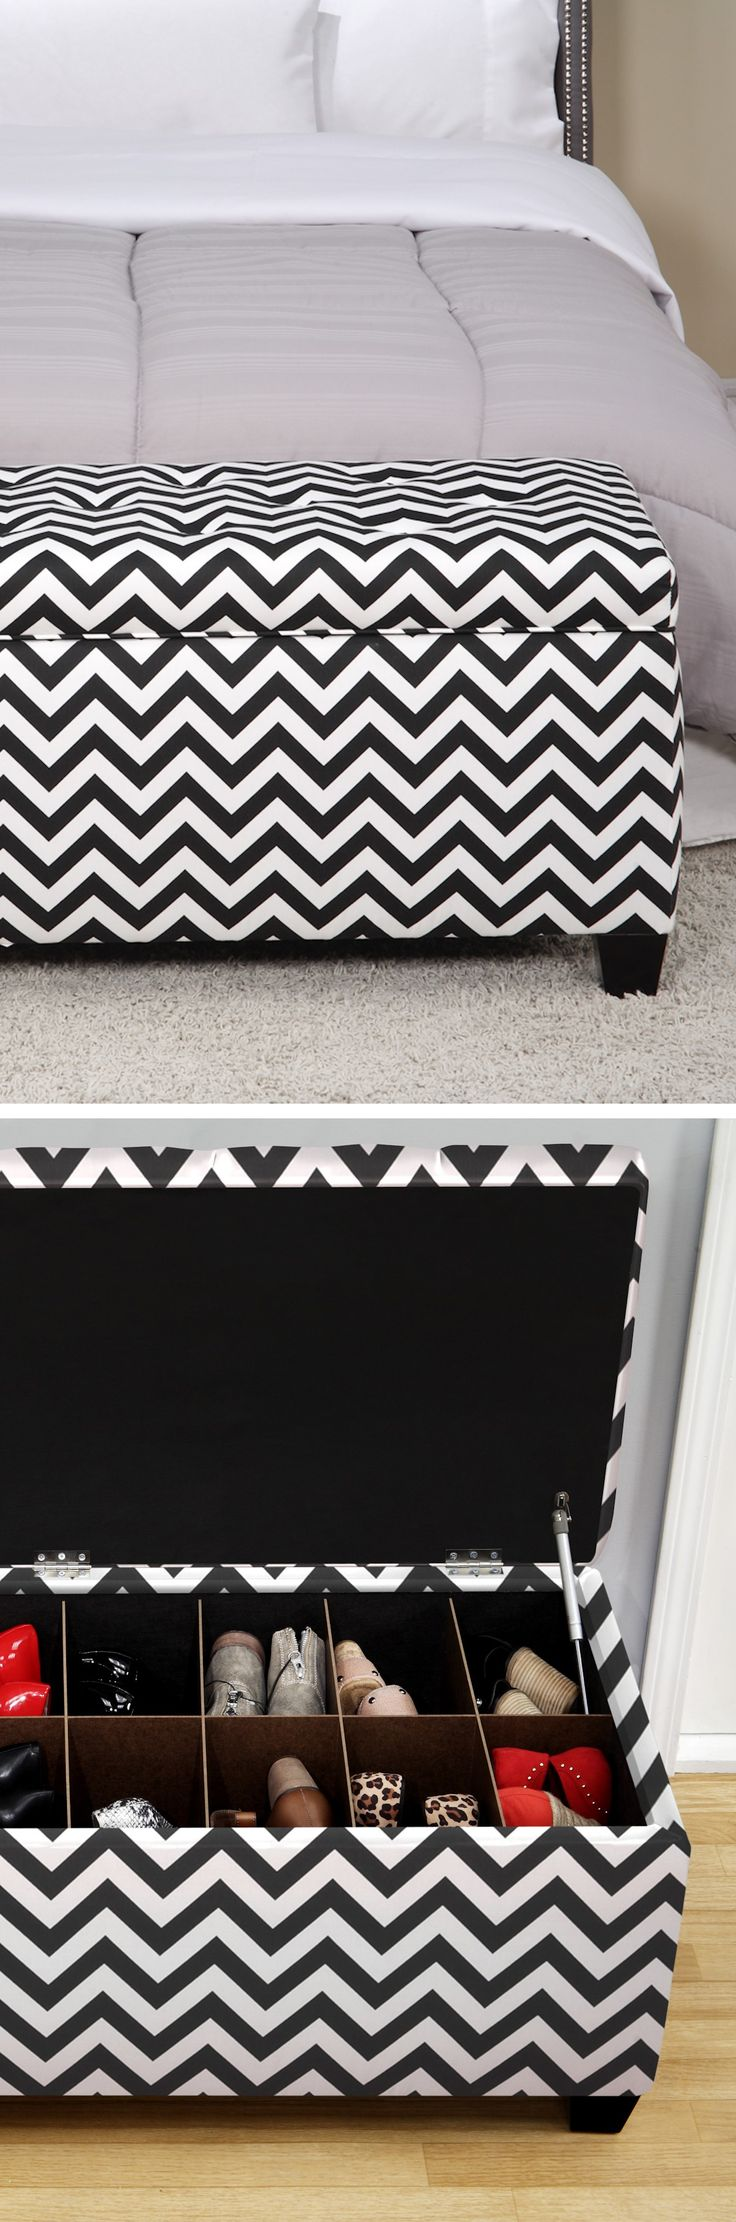 Chevron Shoe Storage Ottoman Bench // Need This! So Perfect For Bedroom Or  Hall Part 52